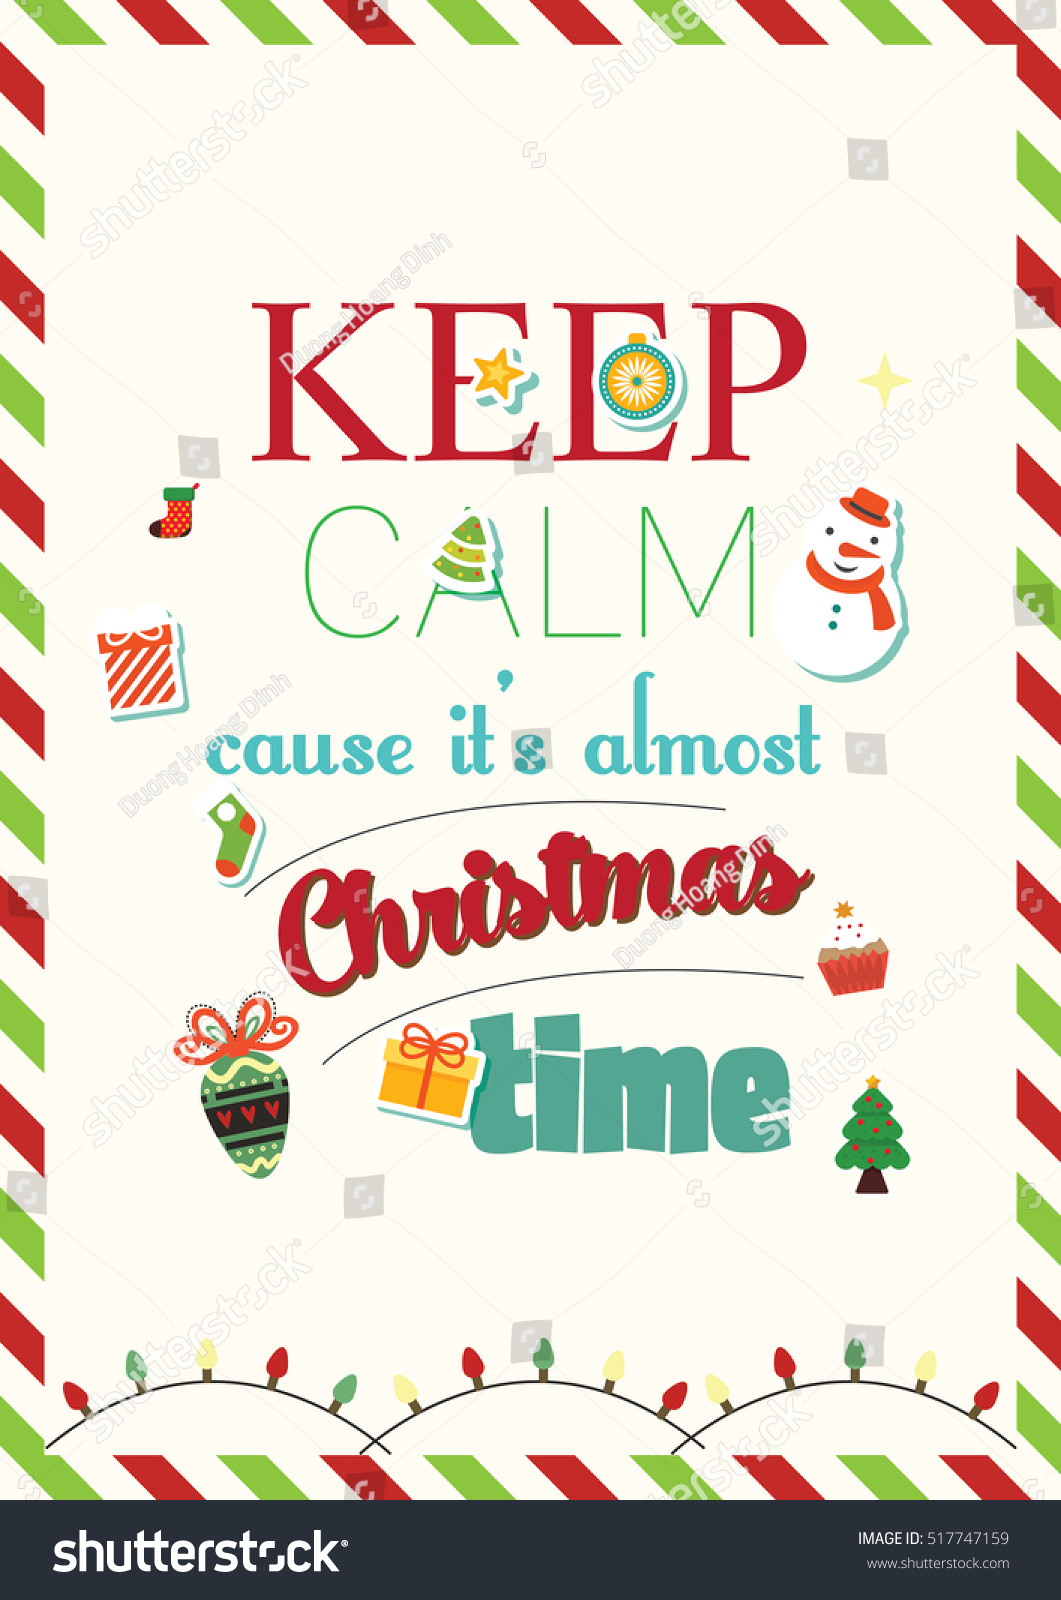 Christmas Quote Keep Calm Cause Almost Stock Vector (Royalty Free ...